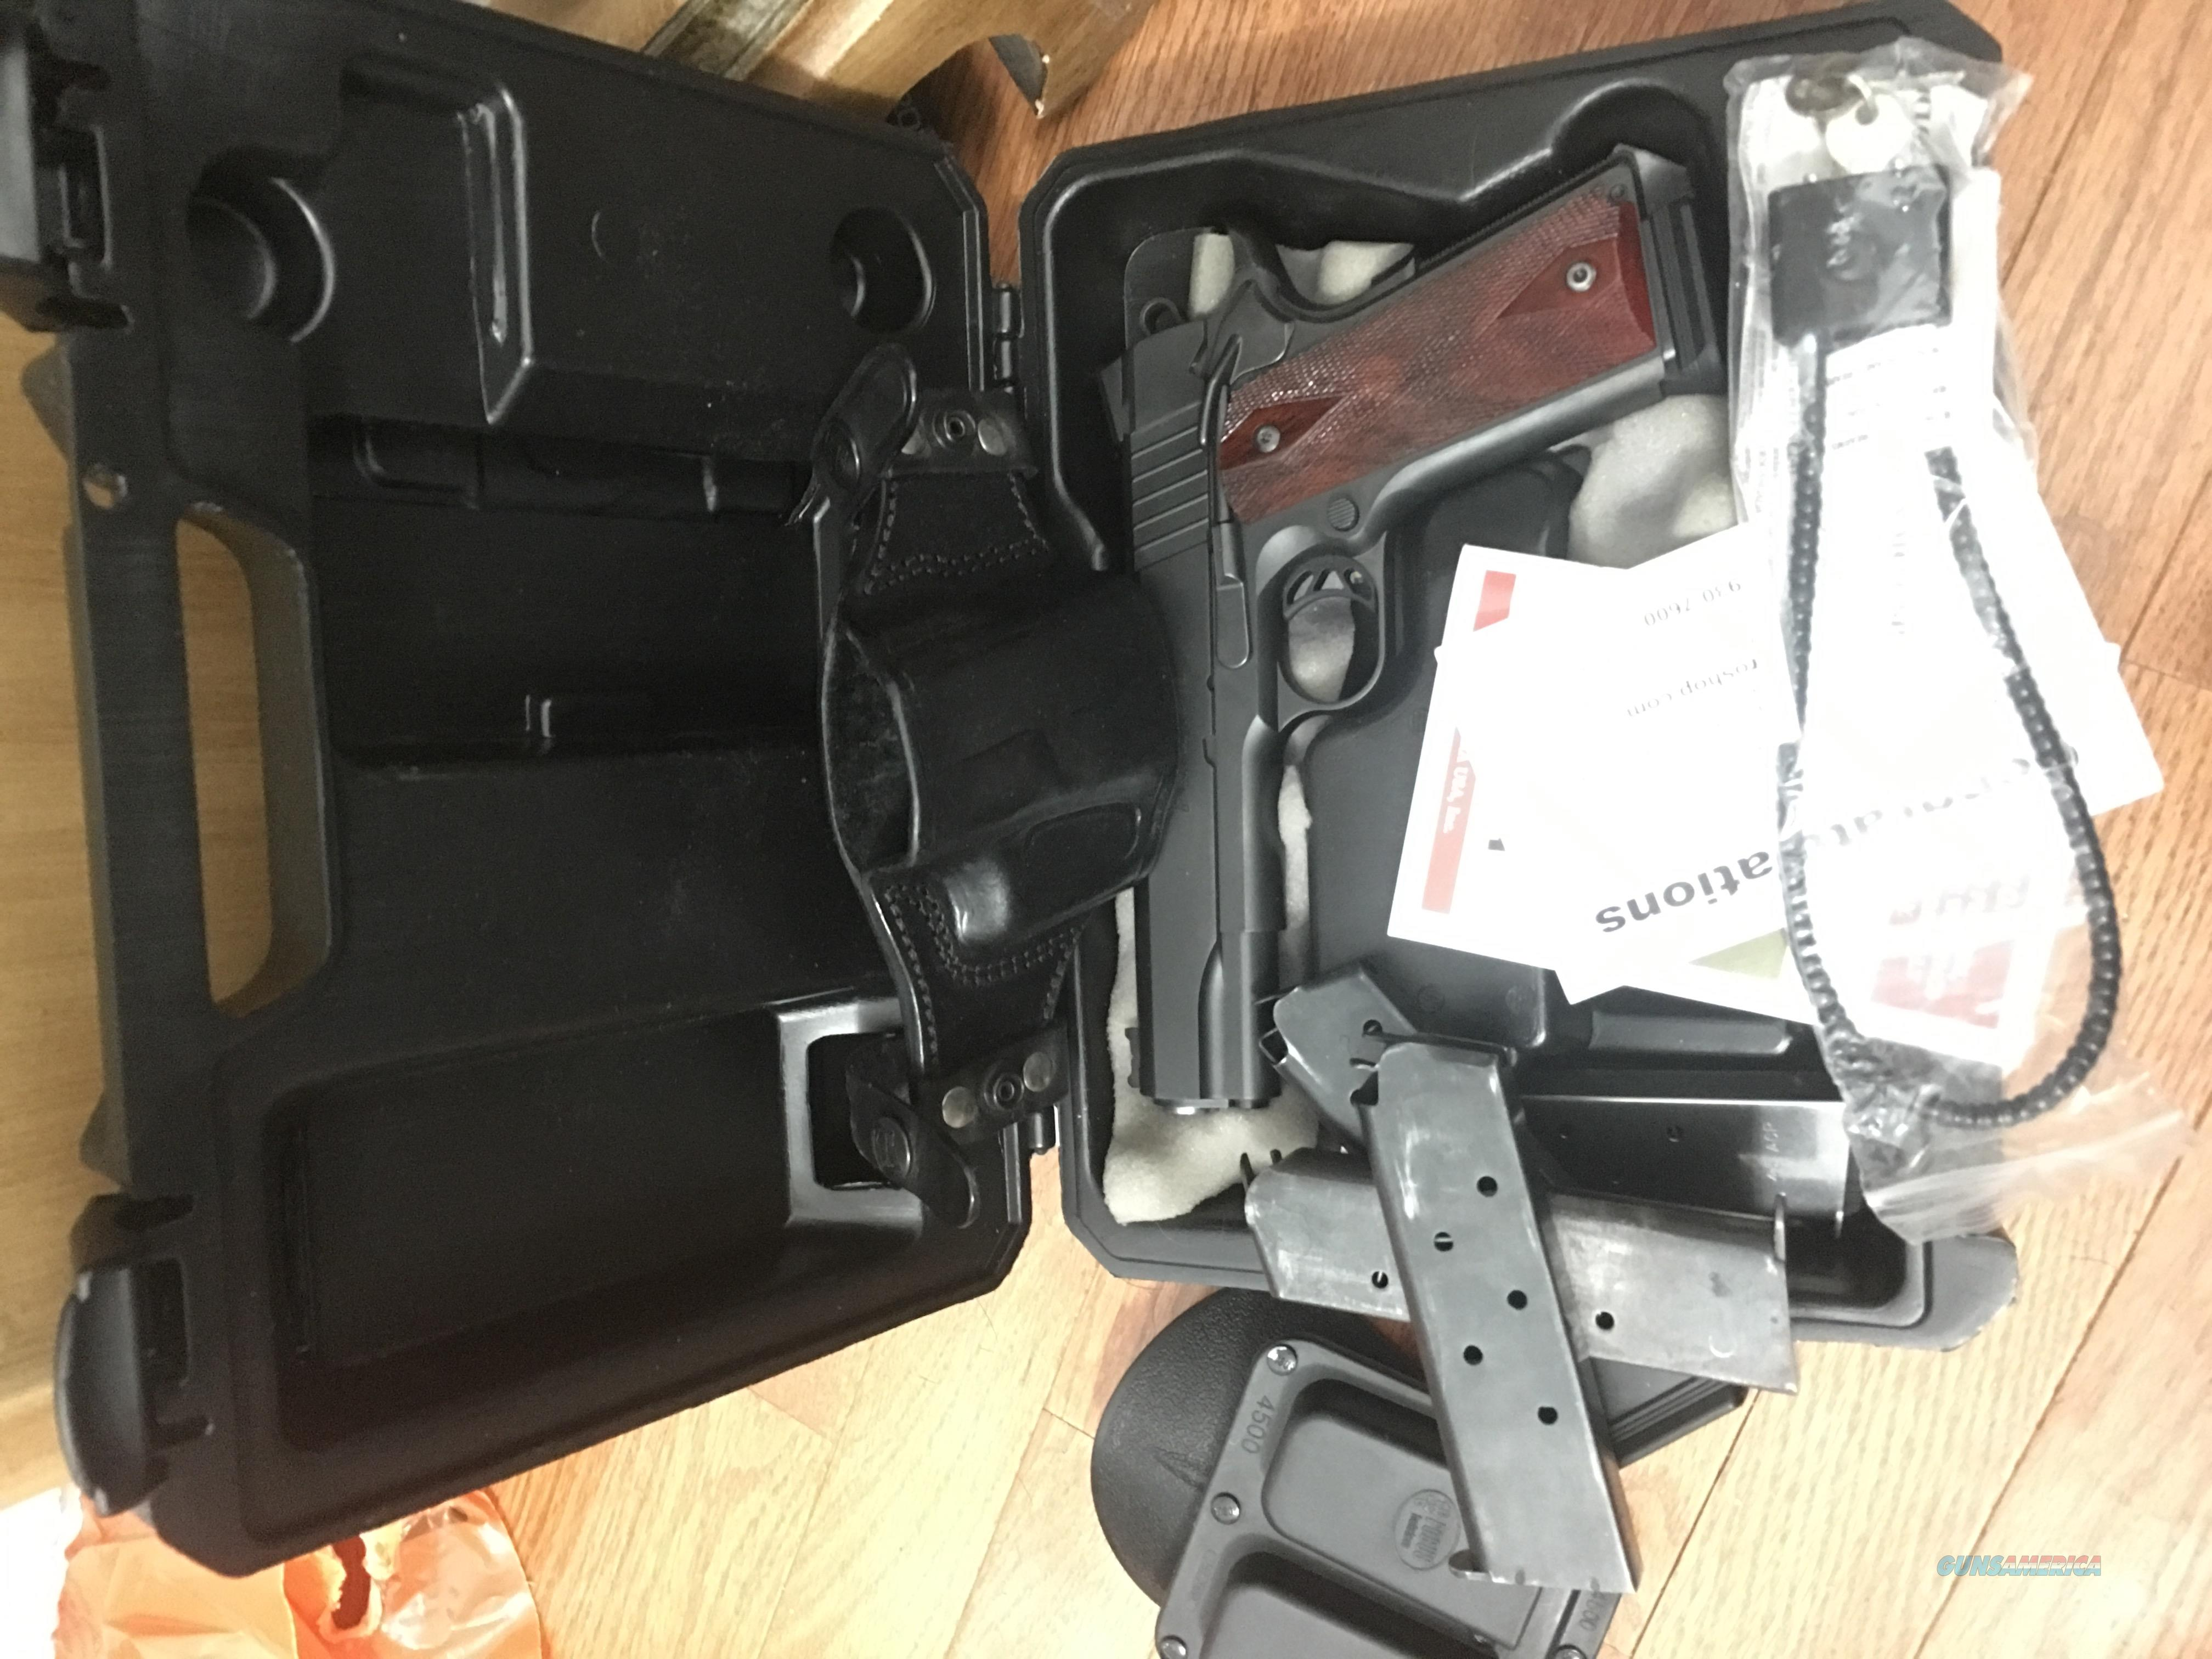 PARA ELITE 1911 PACKAGE *price lowered*AS NEW QUALITY** 5 mags, holster, extras  Guns > Pistols > 1911 Pistol Copies (non-Colt)